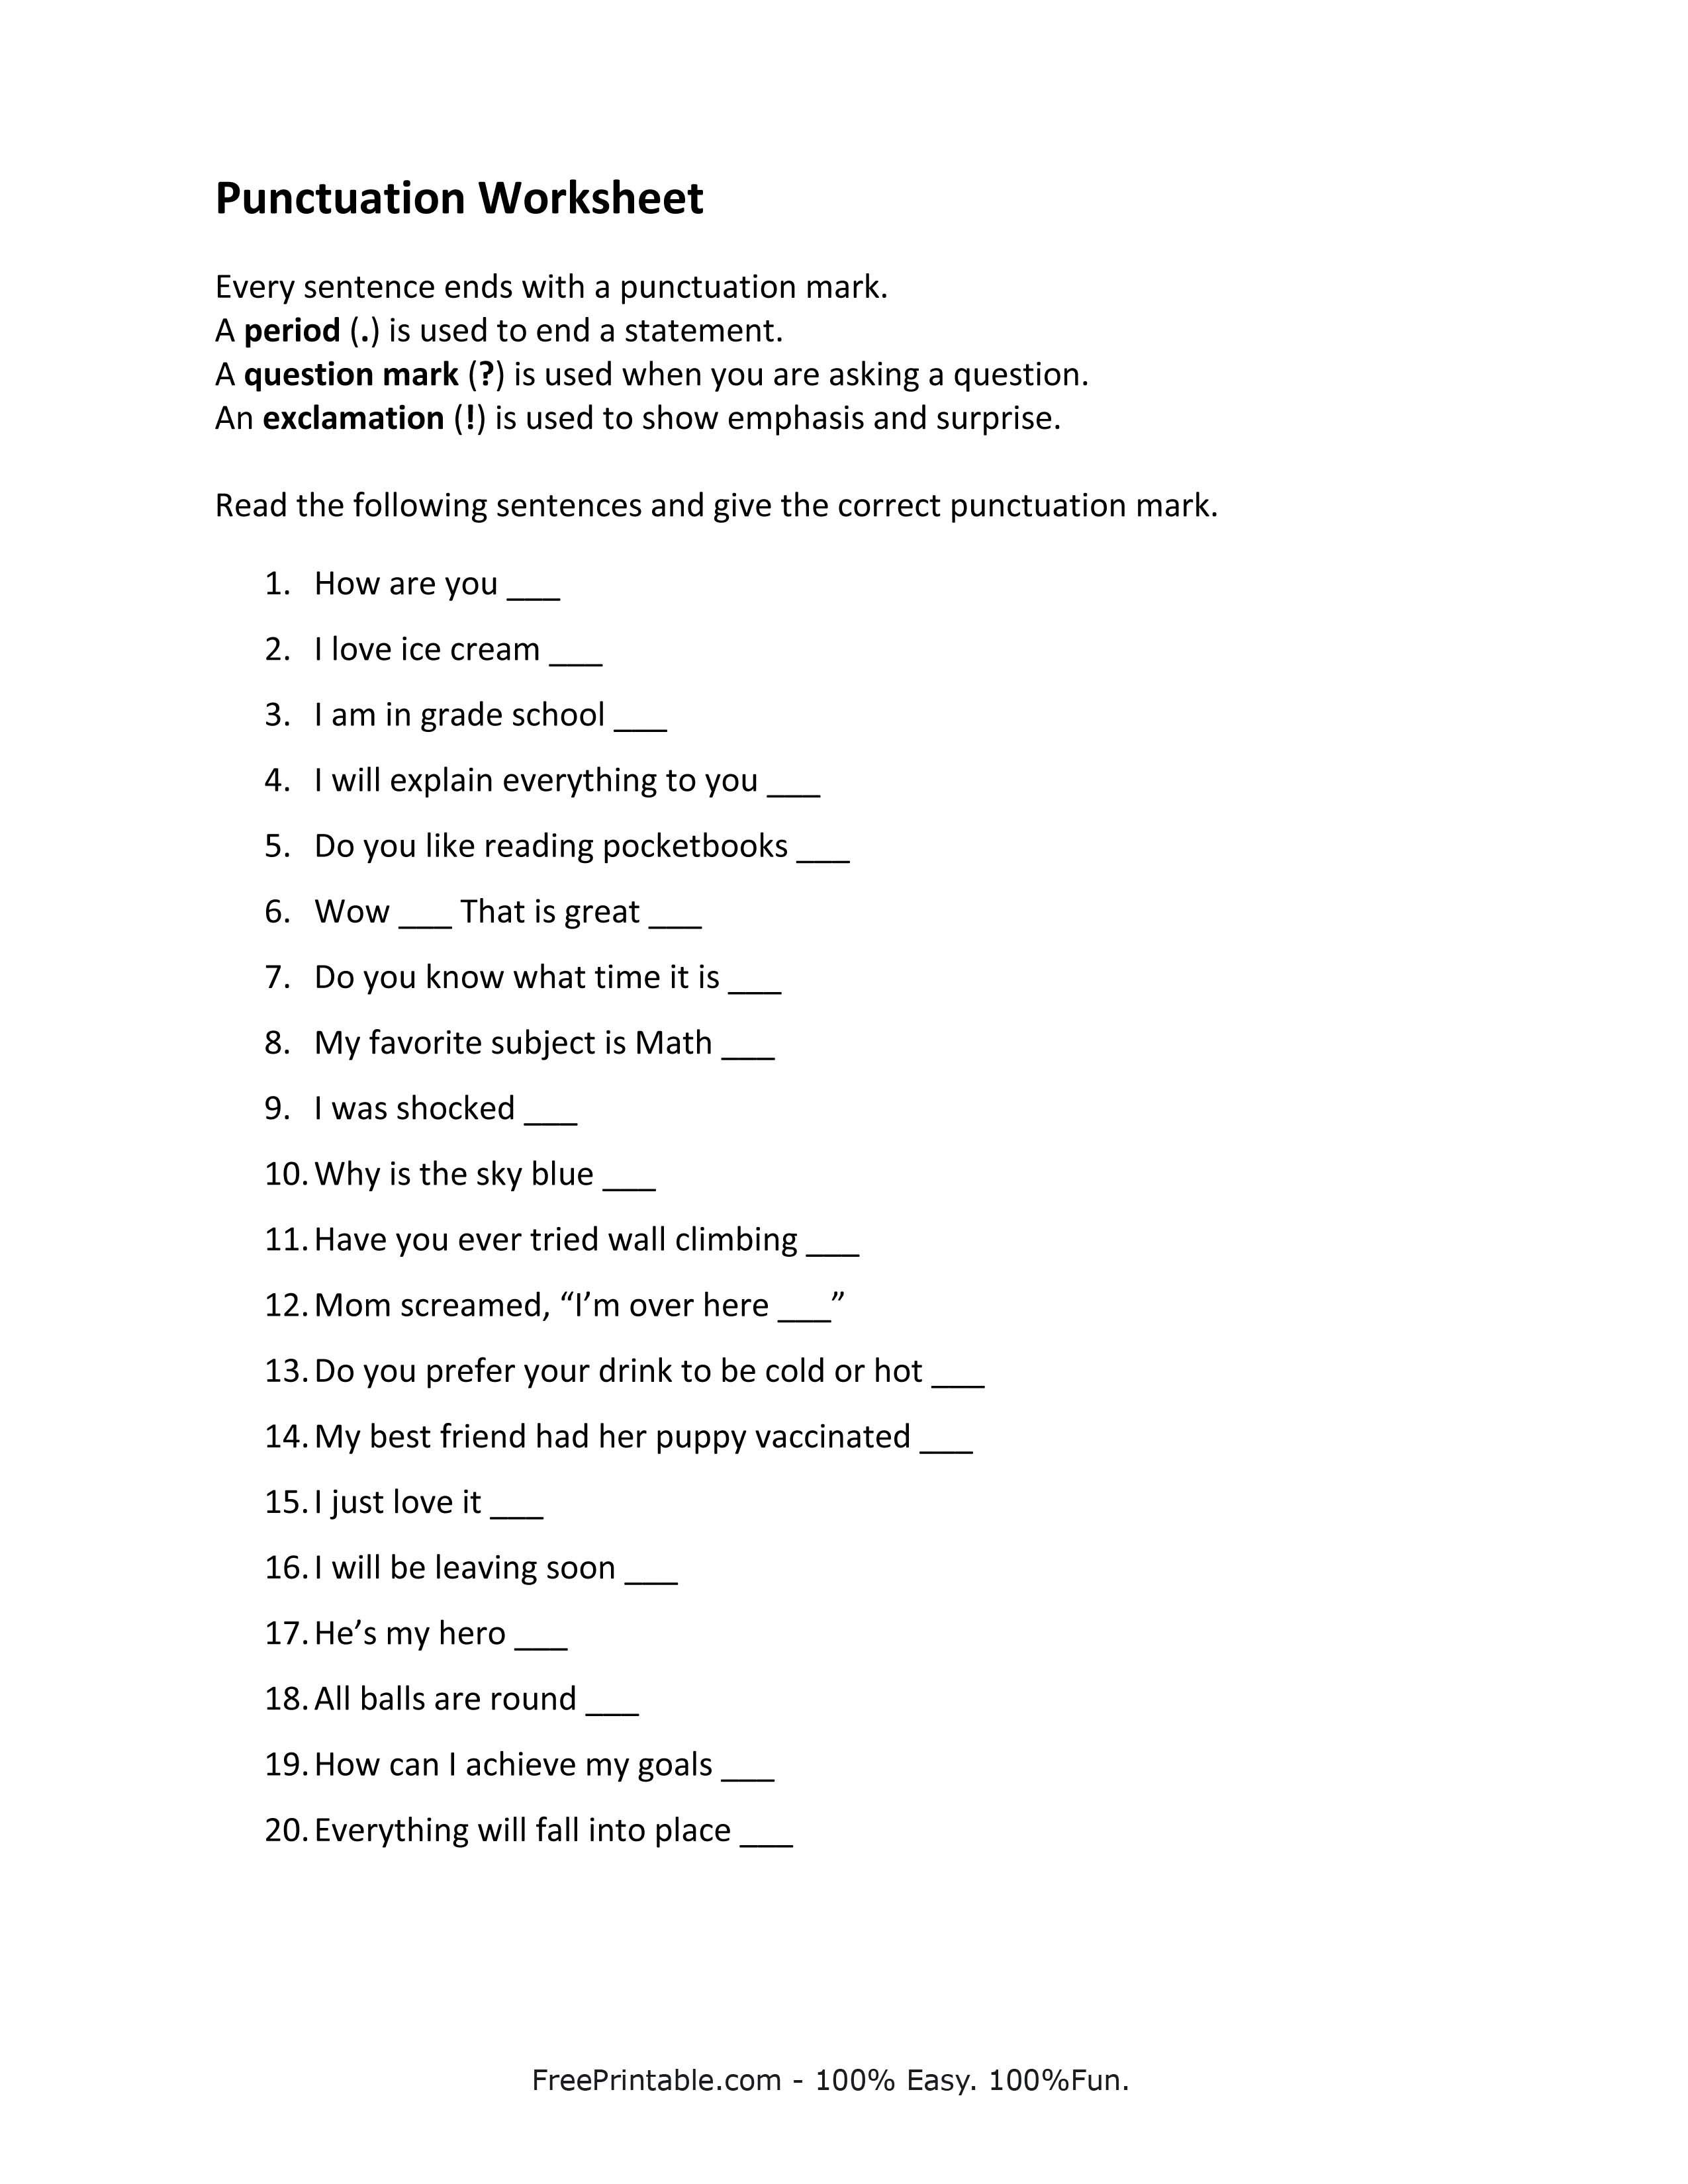 Customize Your Free Printable Punctuation Worksheet Class